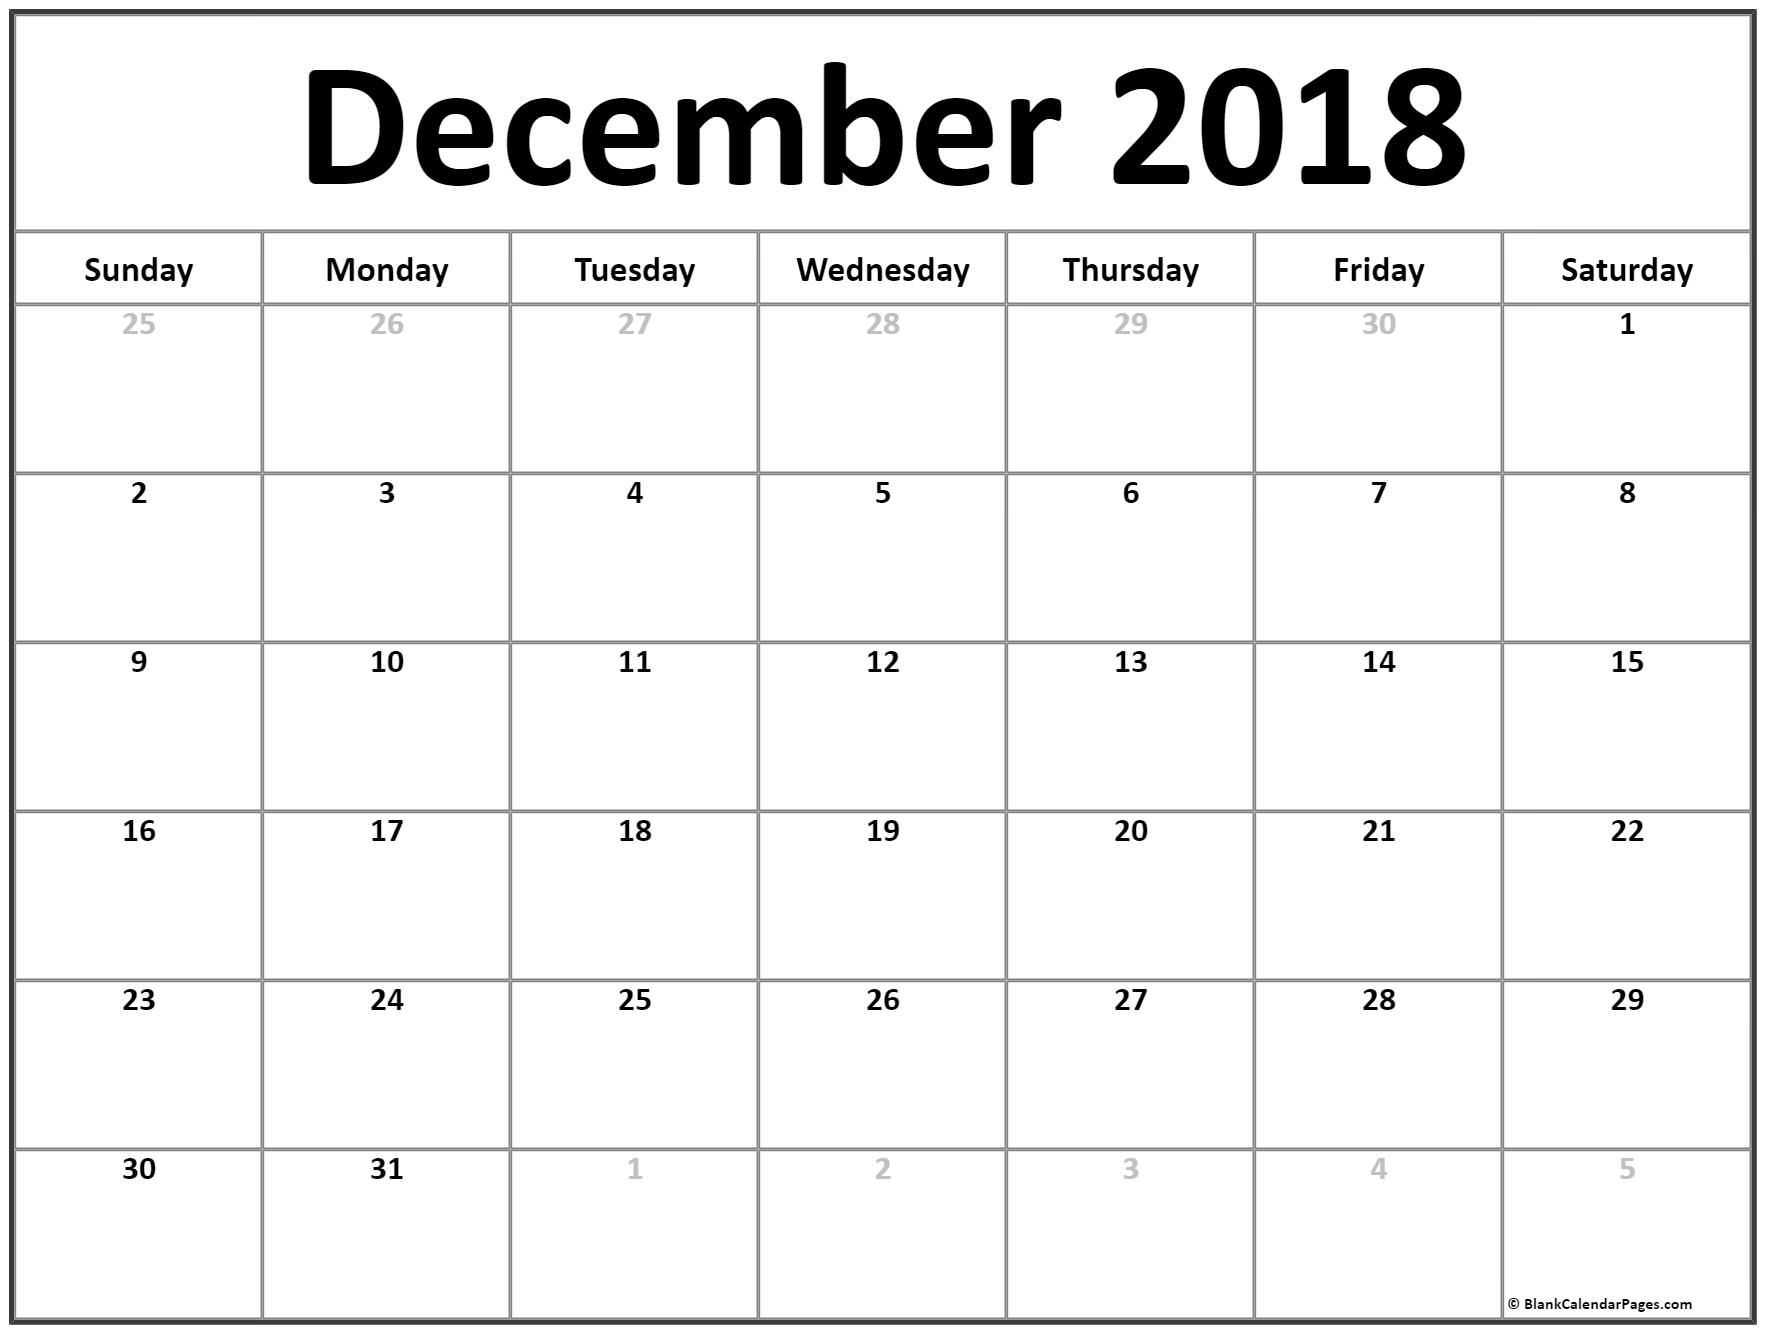 December 2018 Calendar | Free Printable Monthly Calendars for Blank Bold December Calendar